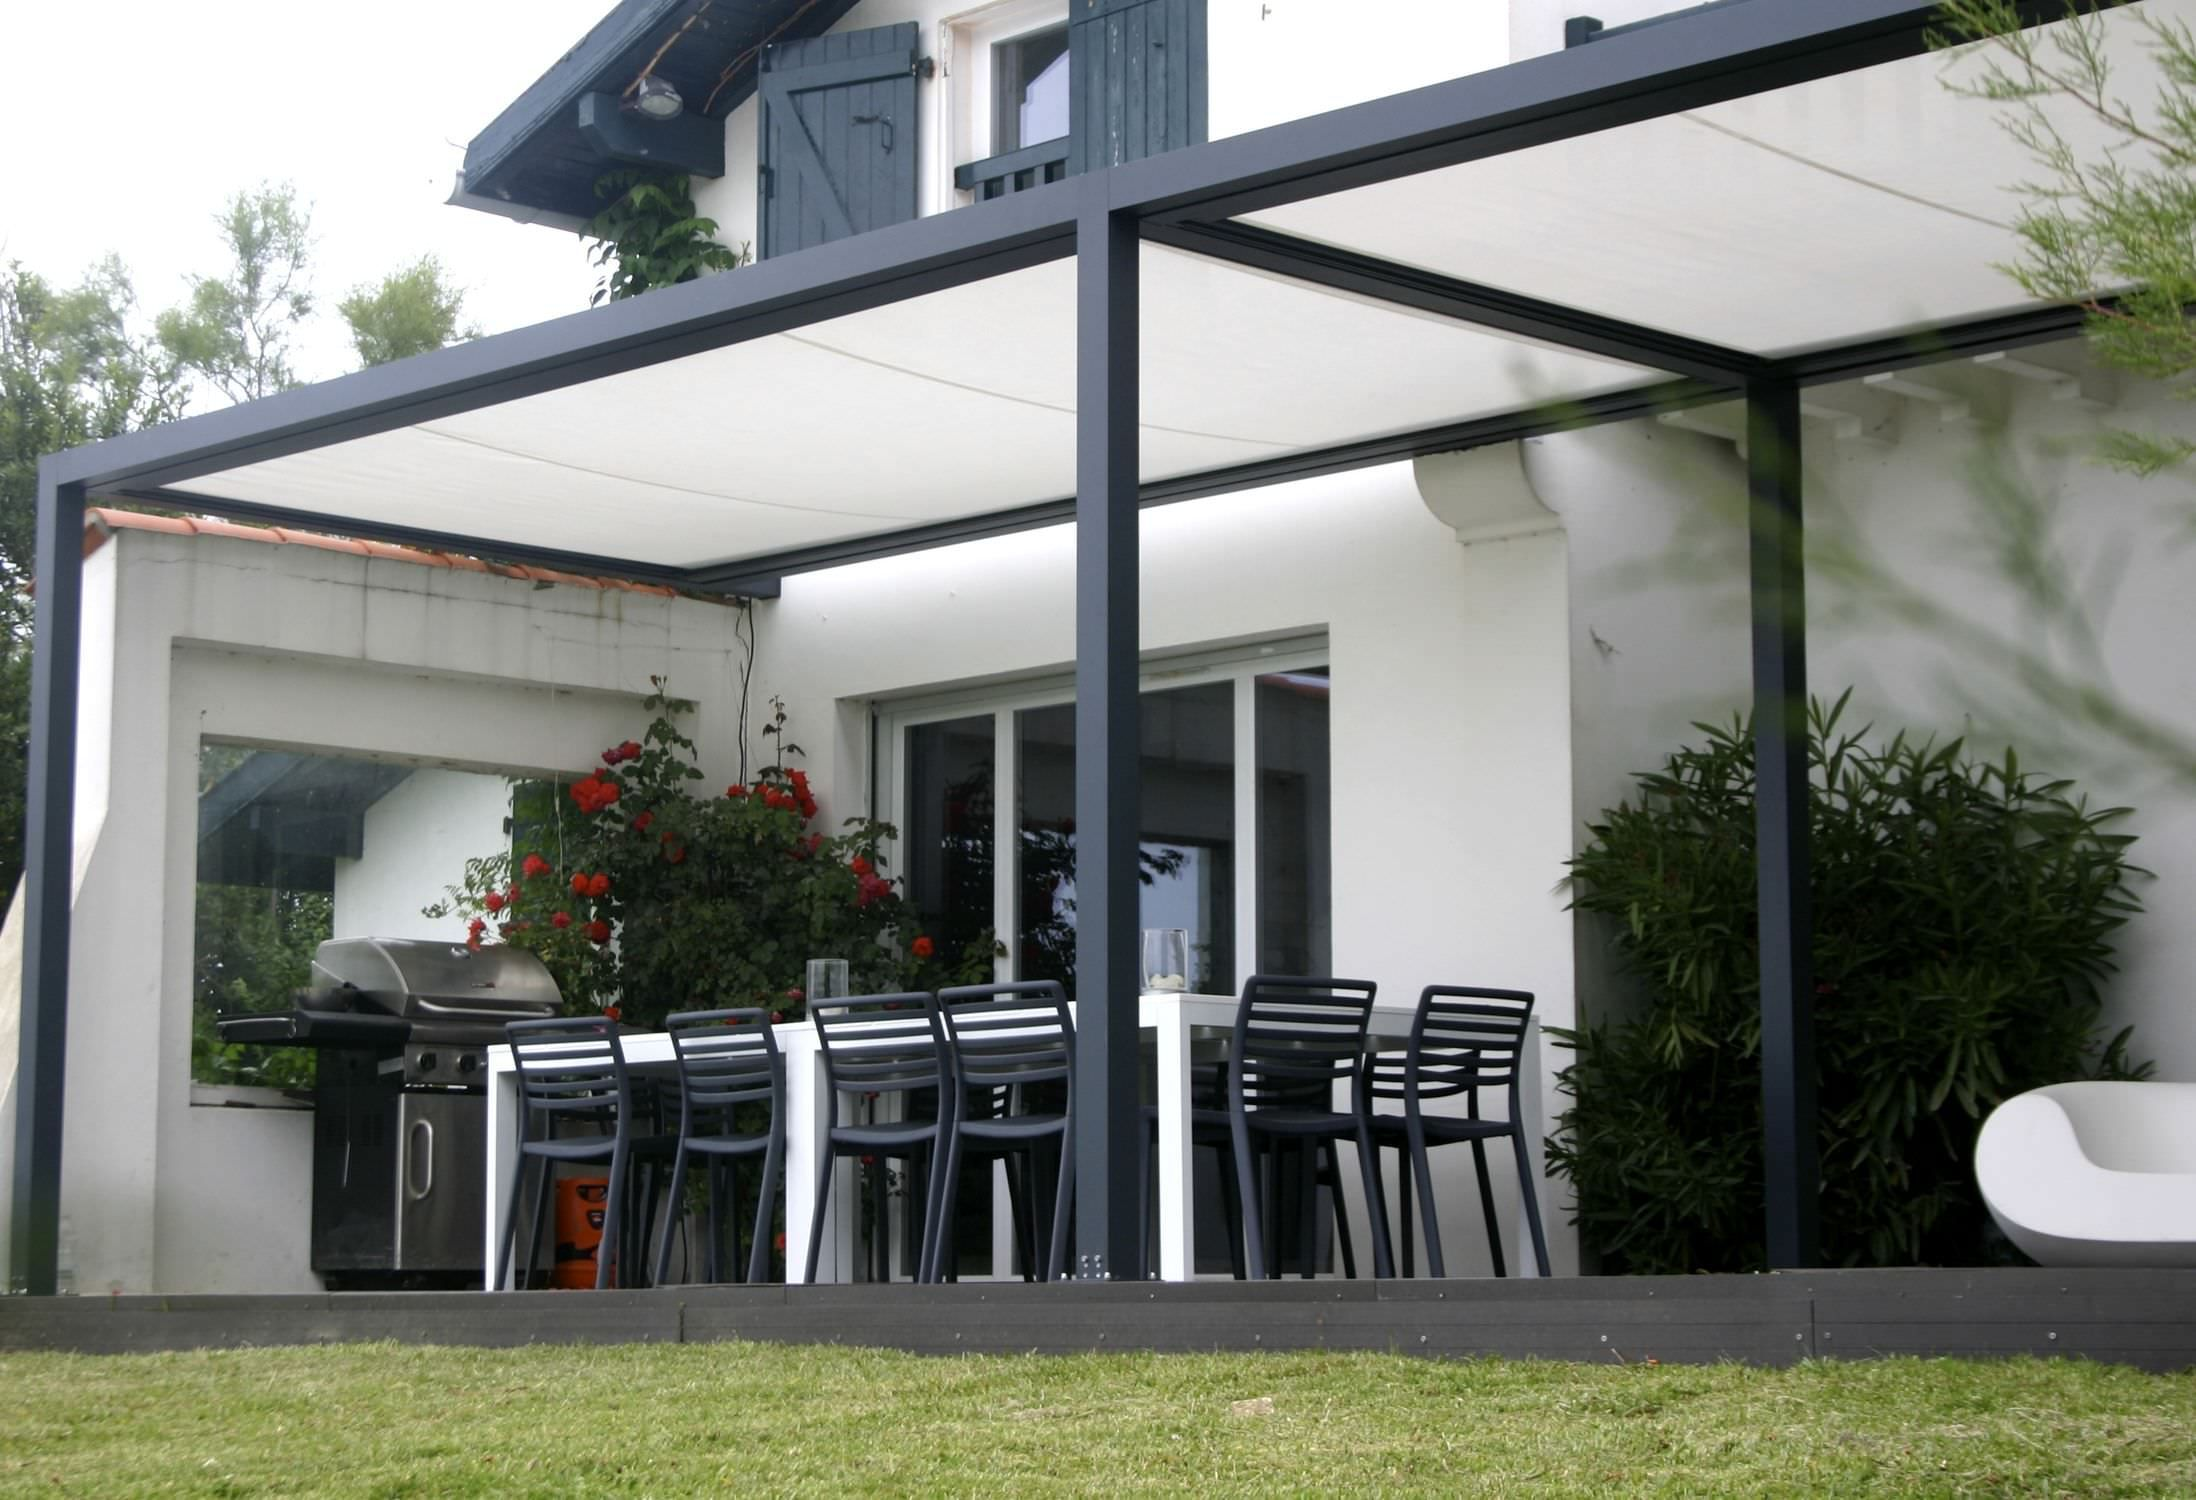 Pergola Terrasse Self Supporting Pergola Aluminium Pvc Fabric Sliding Canopy